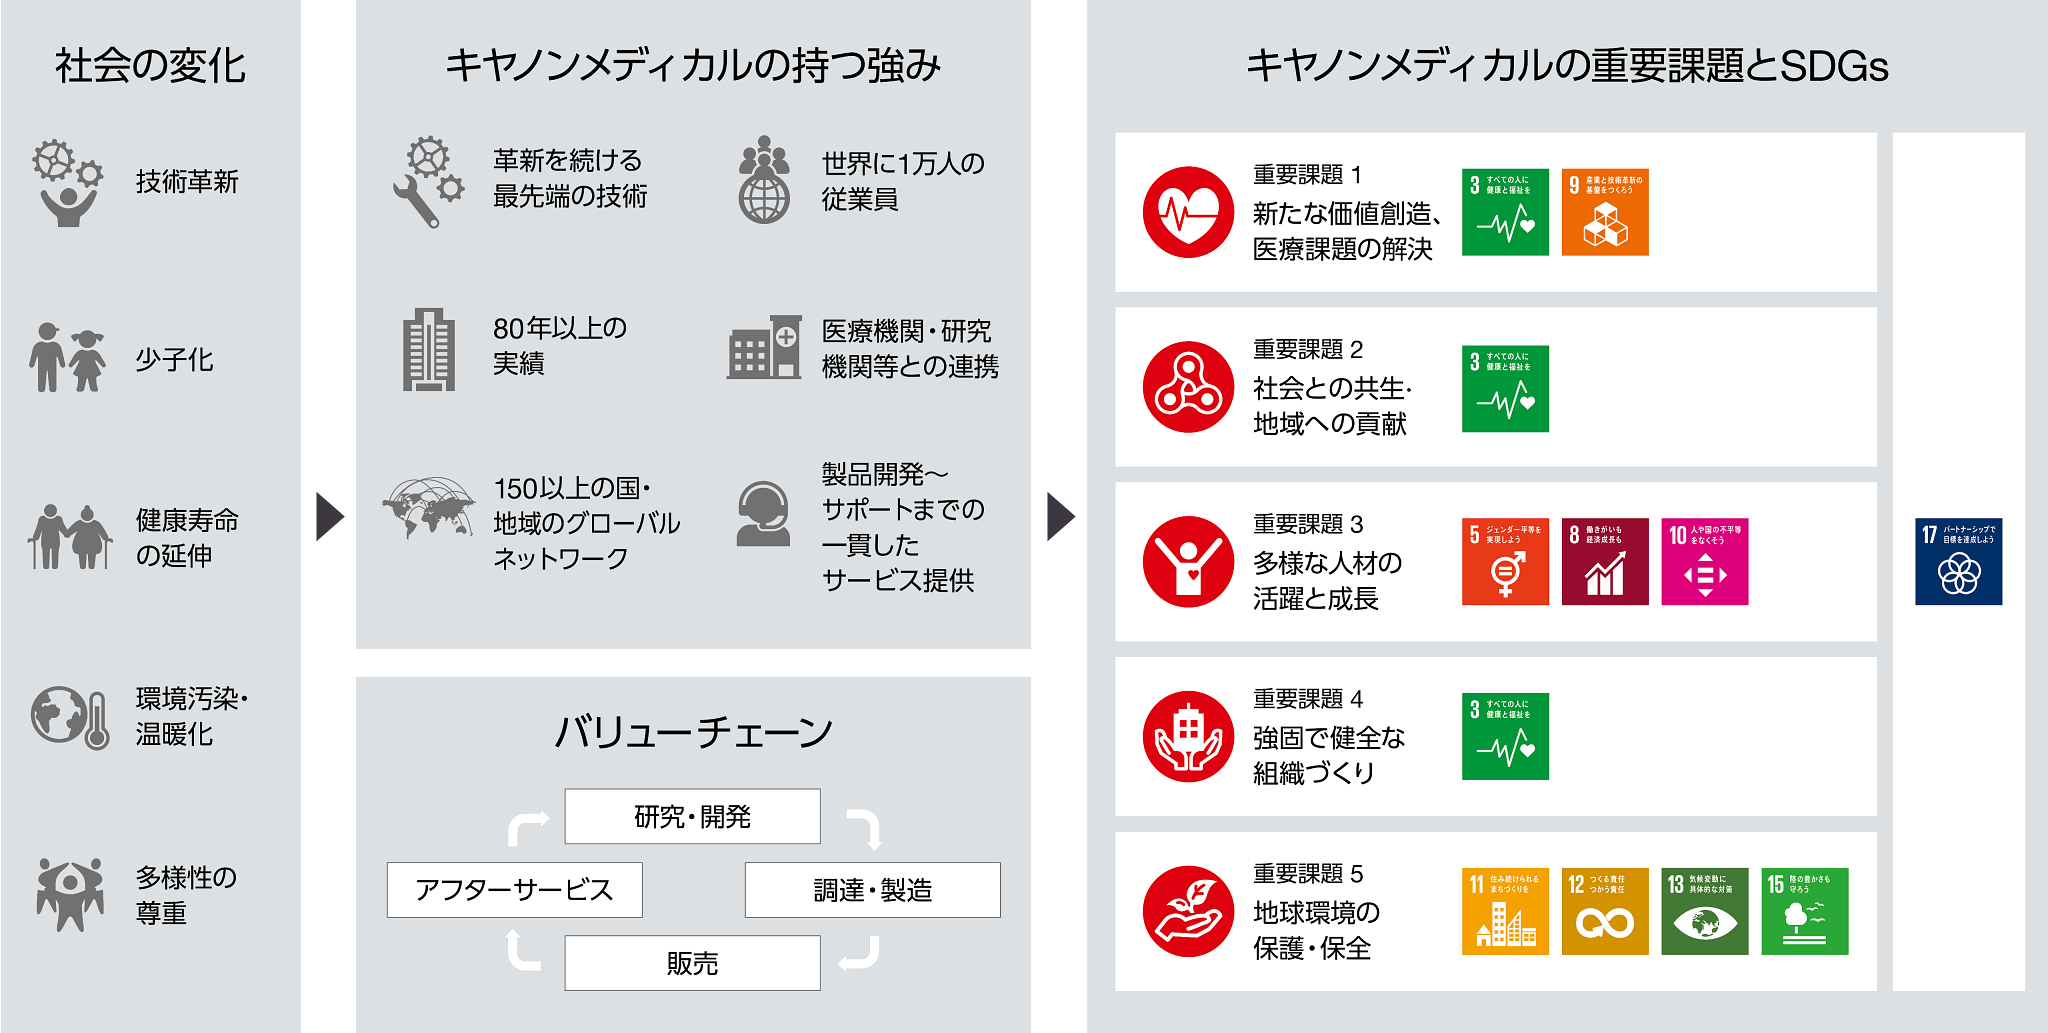 CANON MEDICAL_CSR2020_000madeforlife-v2.png